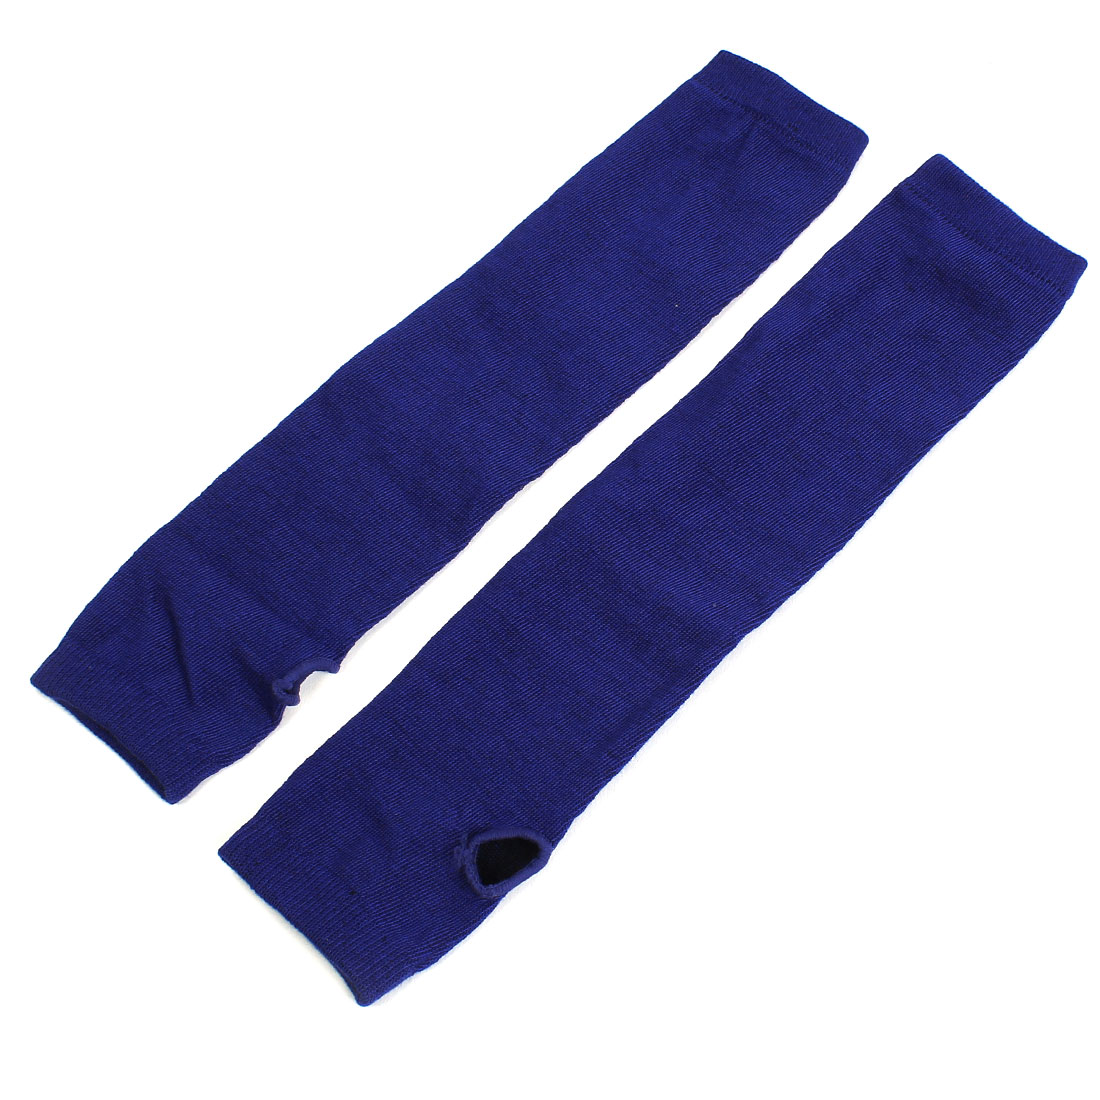 Lady Winter Elbow Length Stretchy Fingerless Warmers Gloves Royal Blue Pair